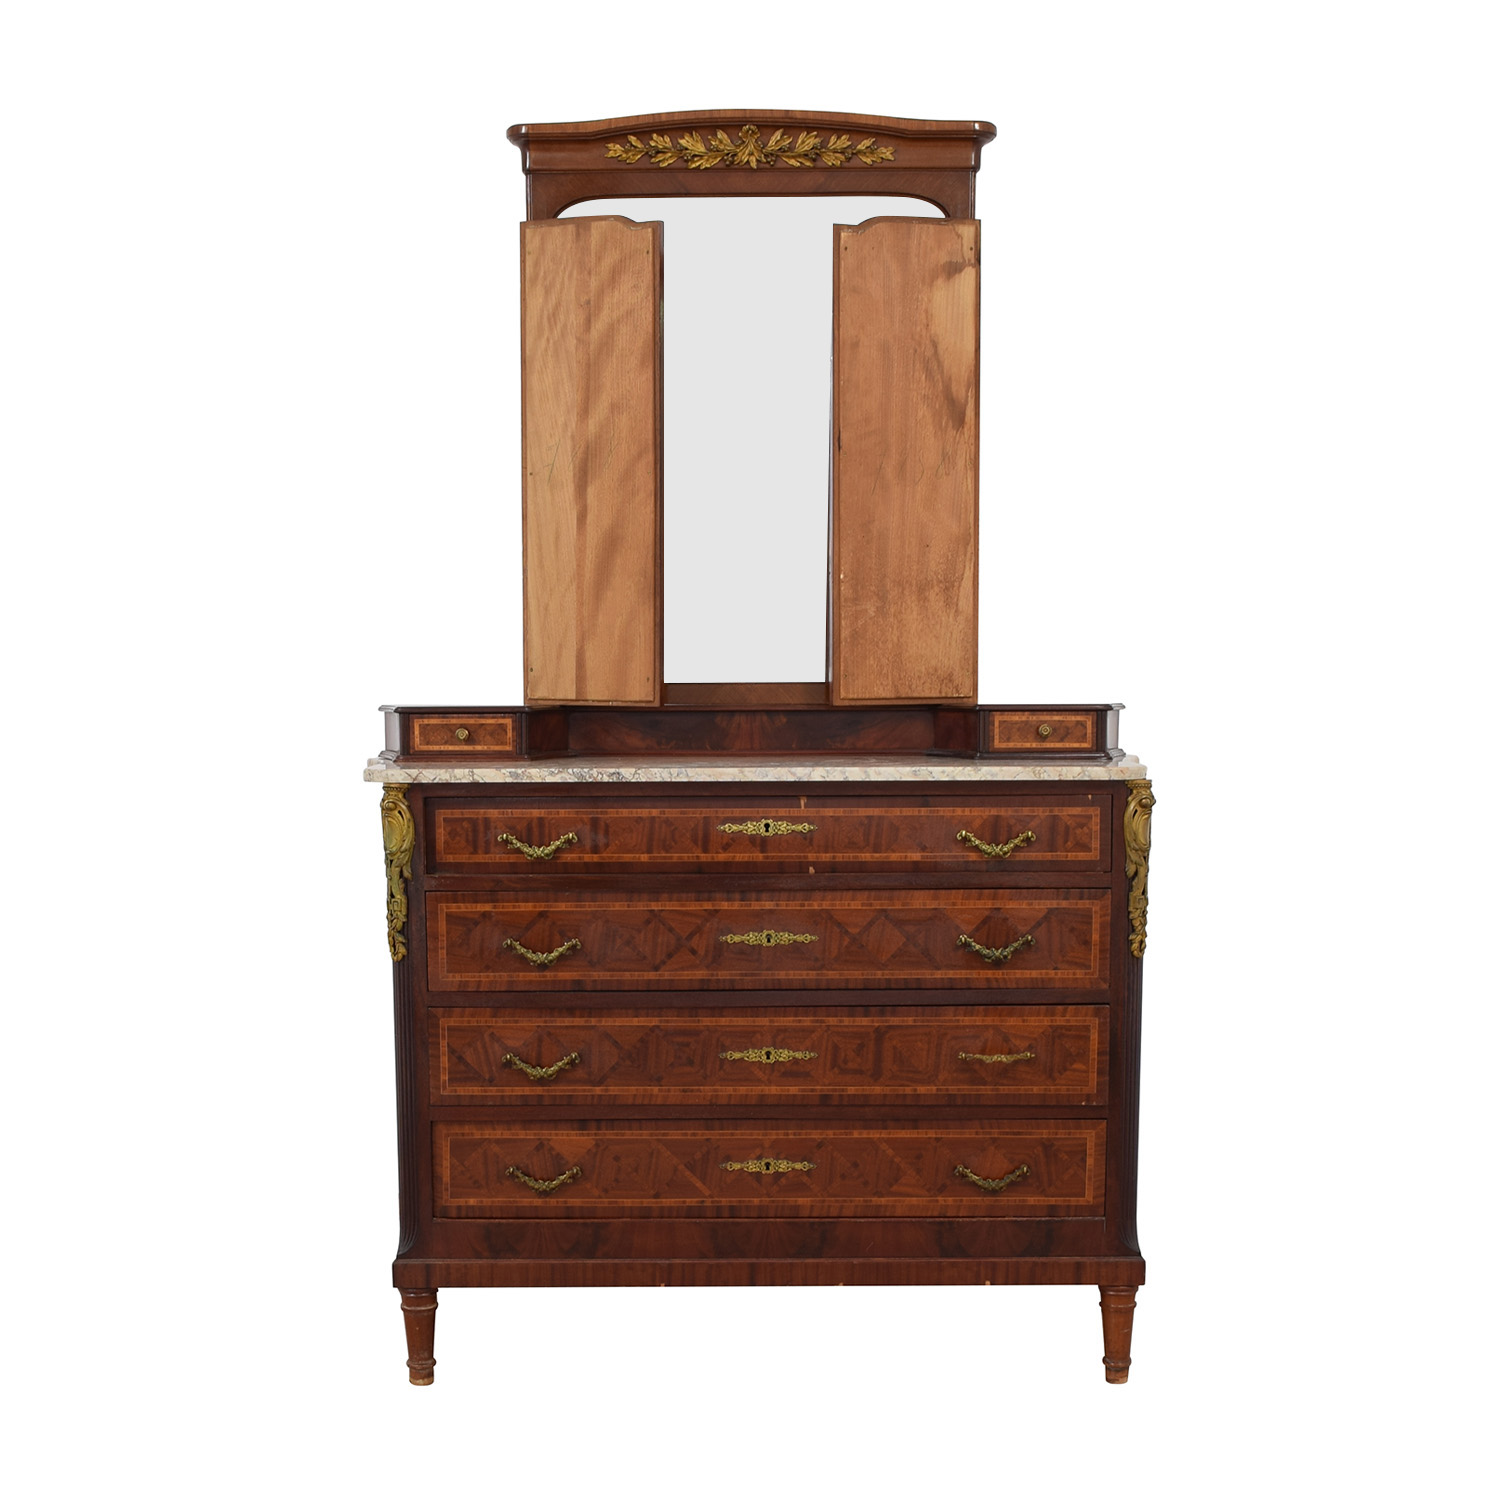 Furniture Masters Furniture Masters Vintage Dresser with Mirror coupon